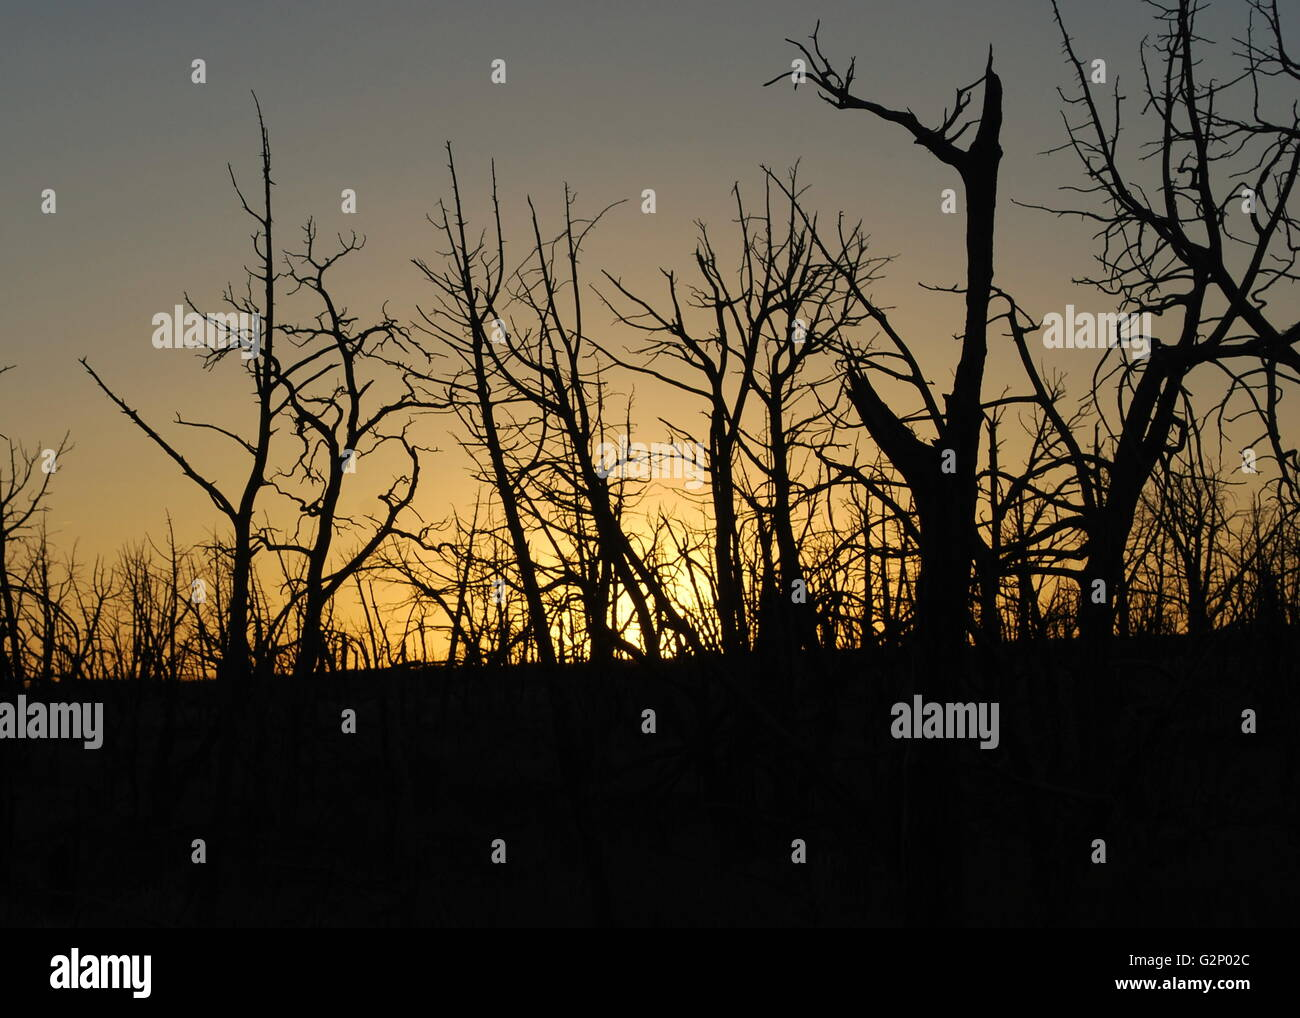 Silhouette of trees against a sunset - Stock Image